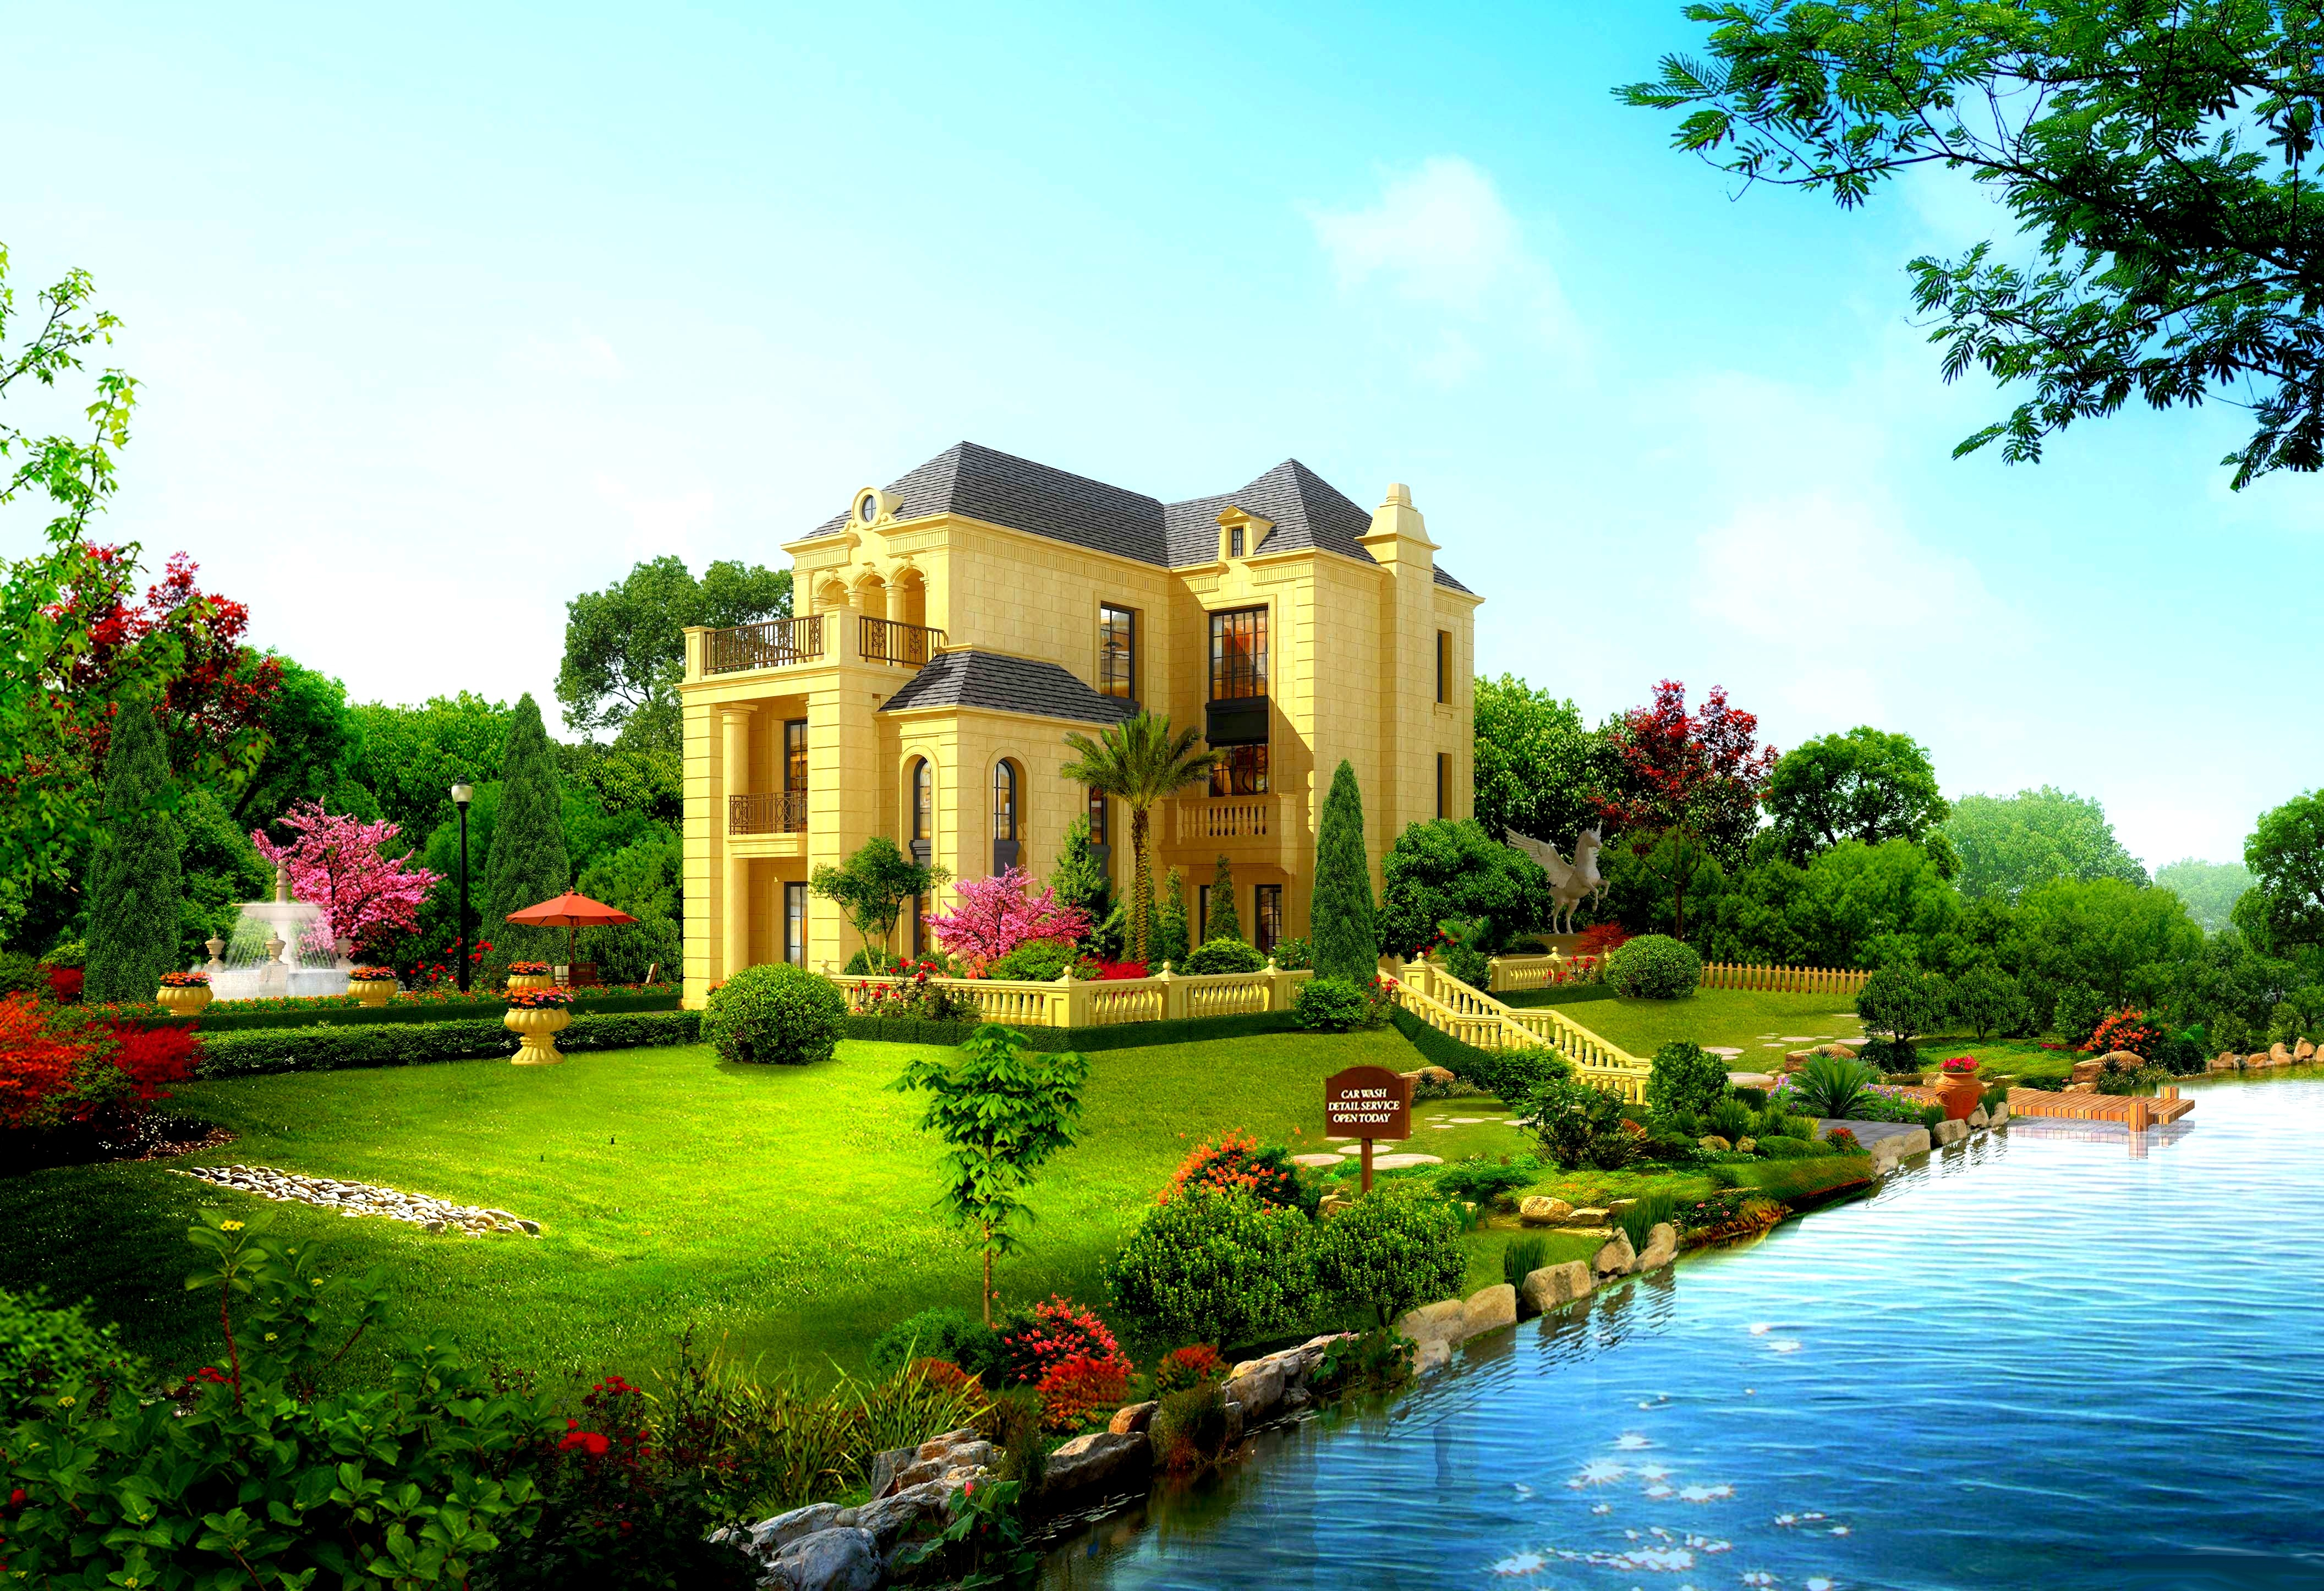 Beautiful house wallpaper 10490 pc en for Wallpaper home photos